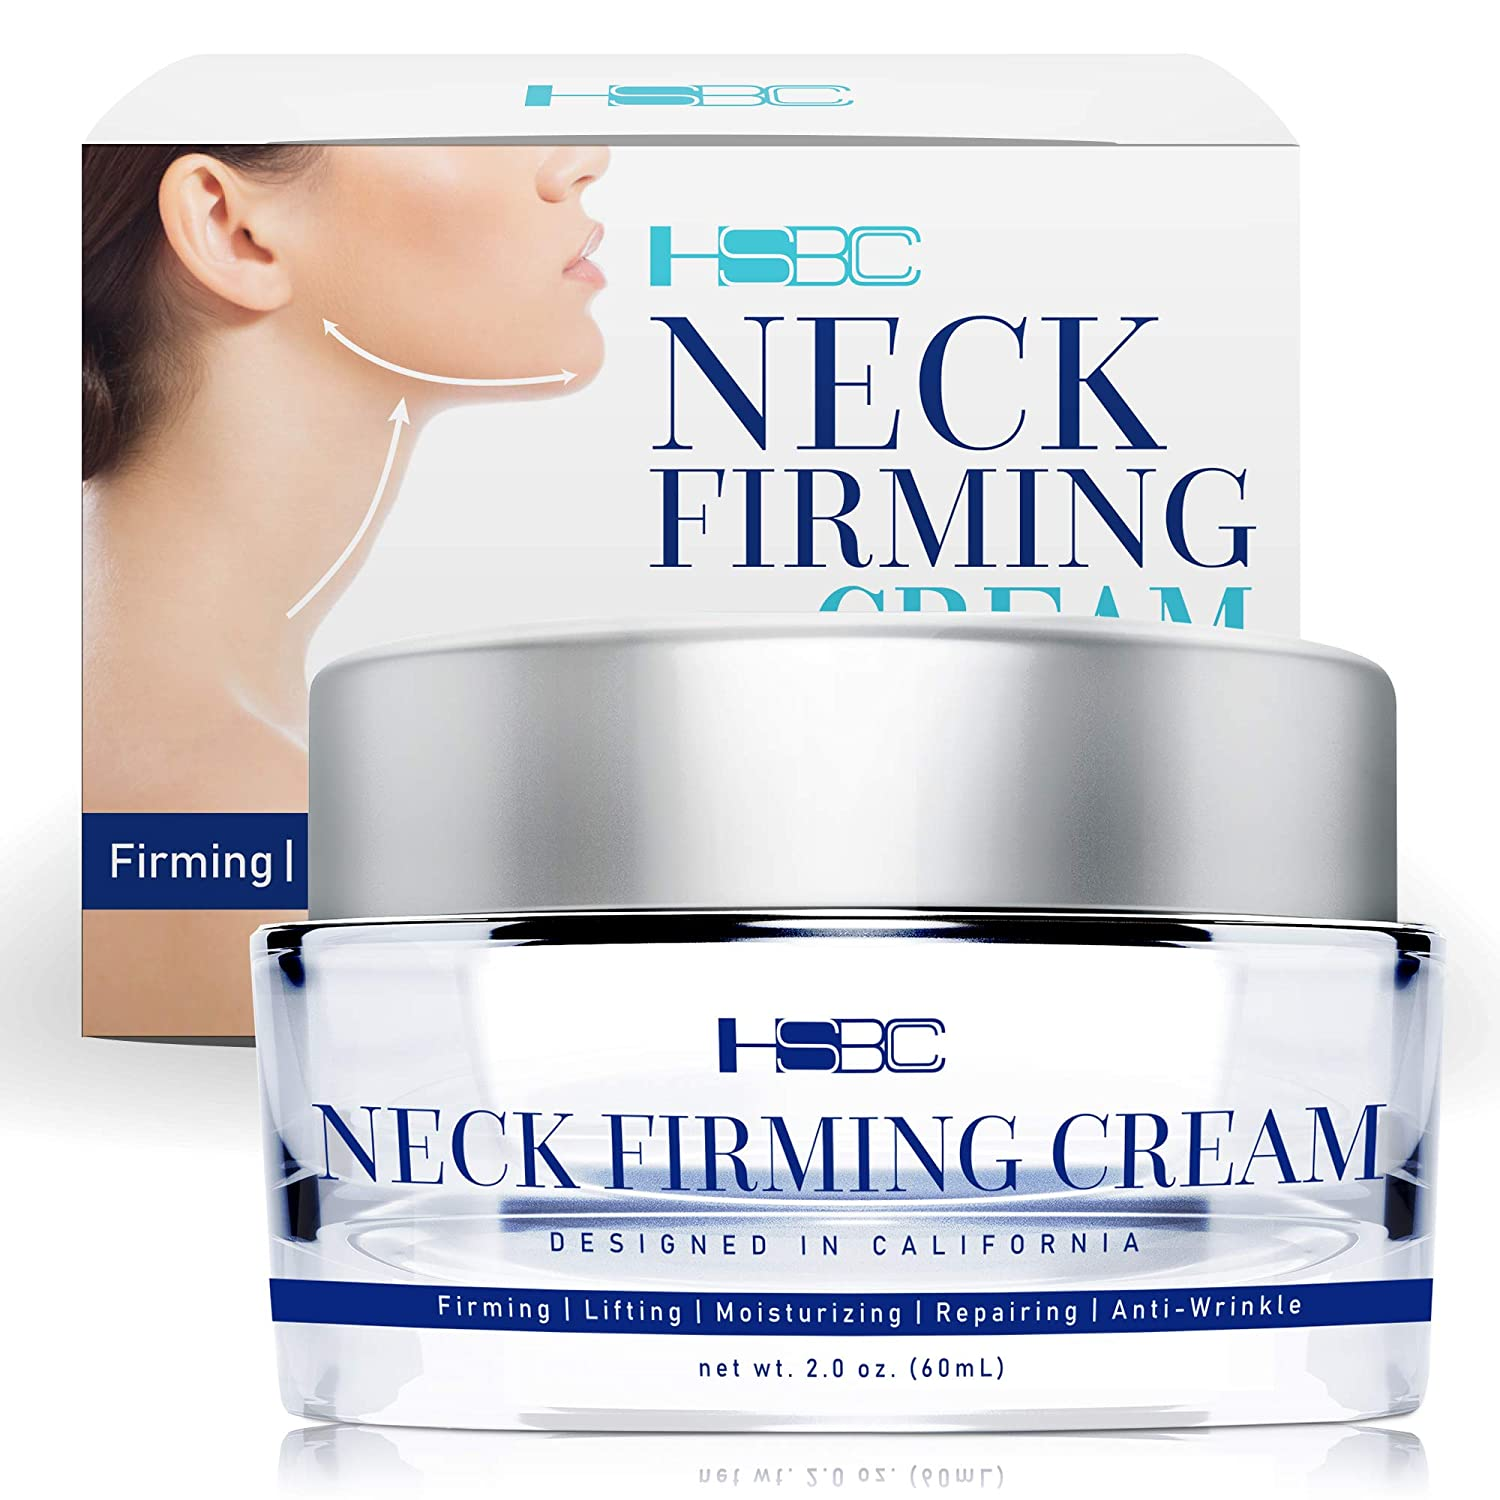 HSBCC Neck Firming Cream with Peptides,Neck Cream,Neck Moisturizer Cream,Anti Wrinkle Anti Aging Neck Lifting Cream for Neck, Advanced Stem Cell + Collagen Formula For Tightening & Lifting Sagging Ski: Beauty